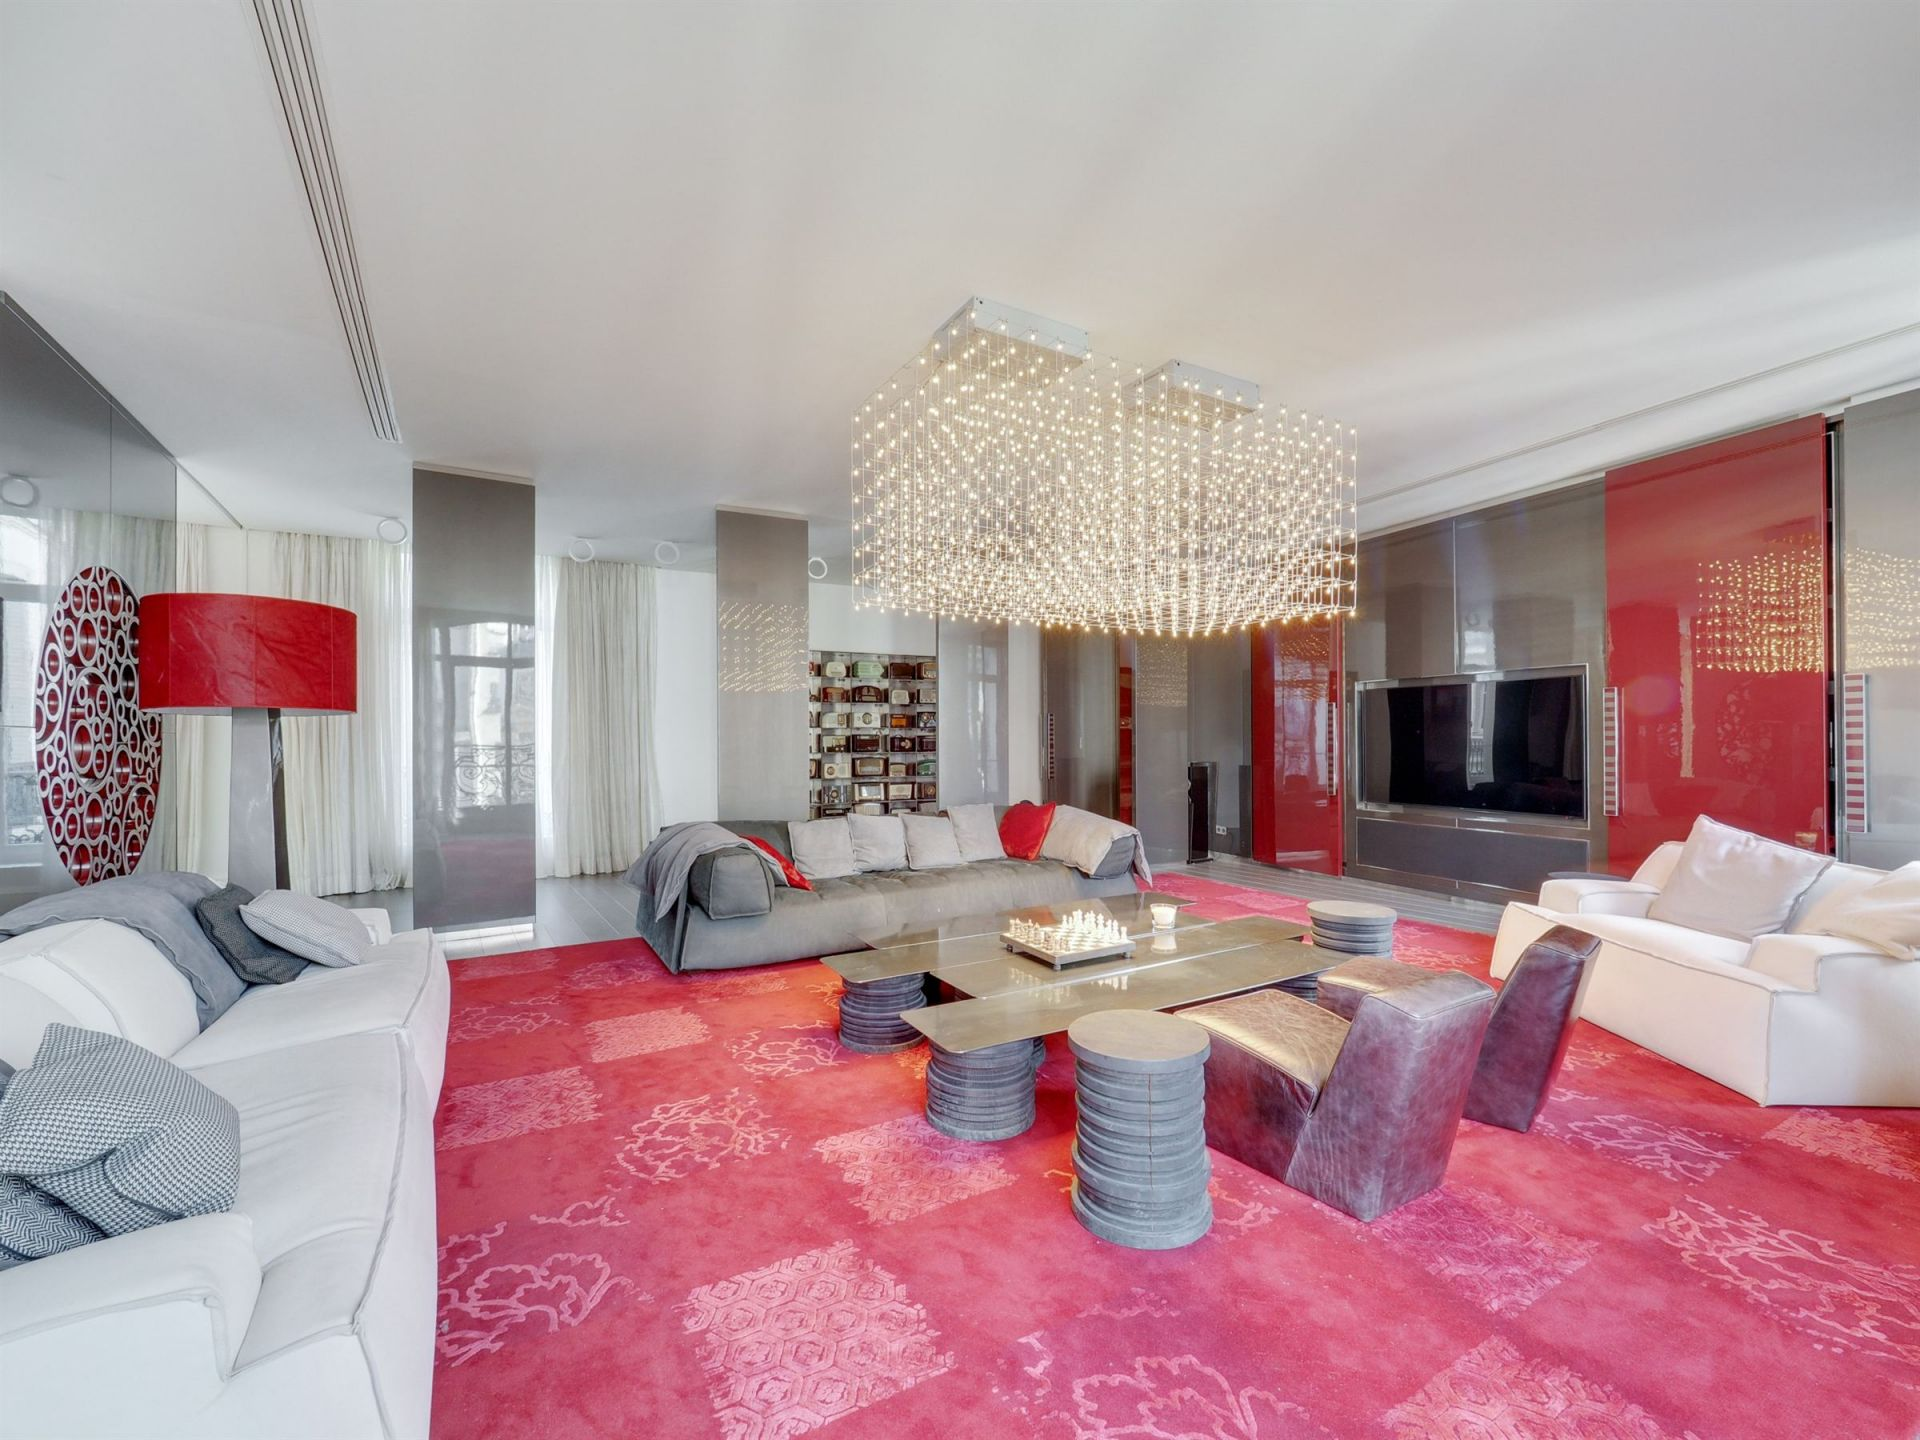 Sale Luxury apartment 8 rooms 4 bedrooms Neuilly Sur Seine (92200)